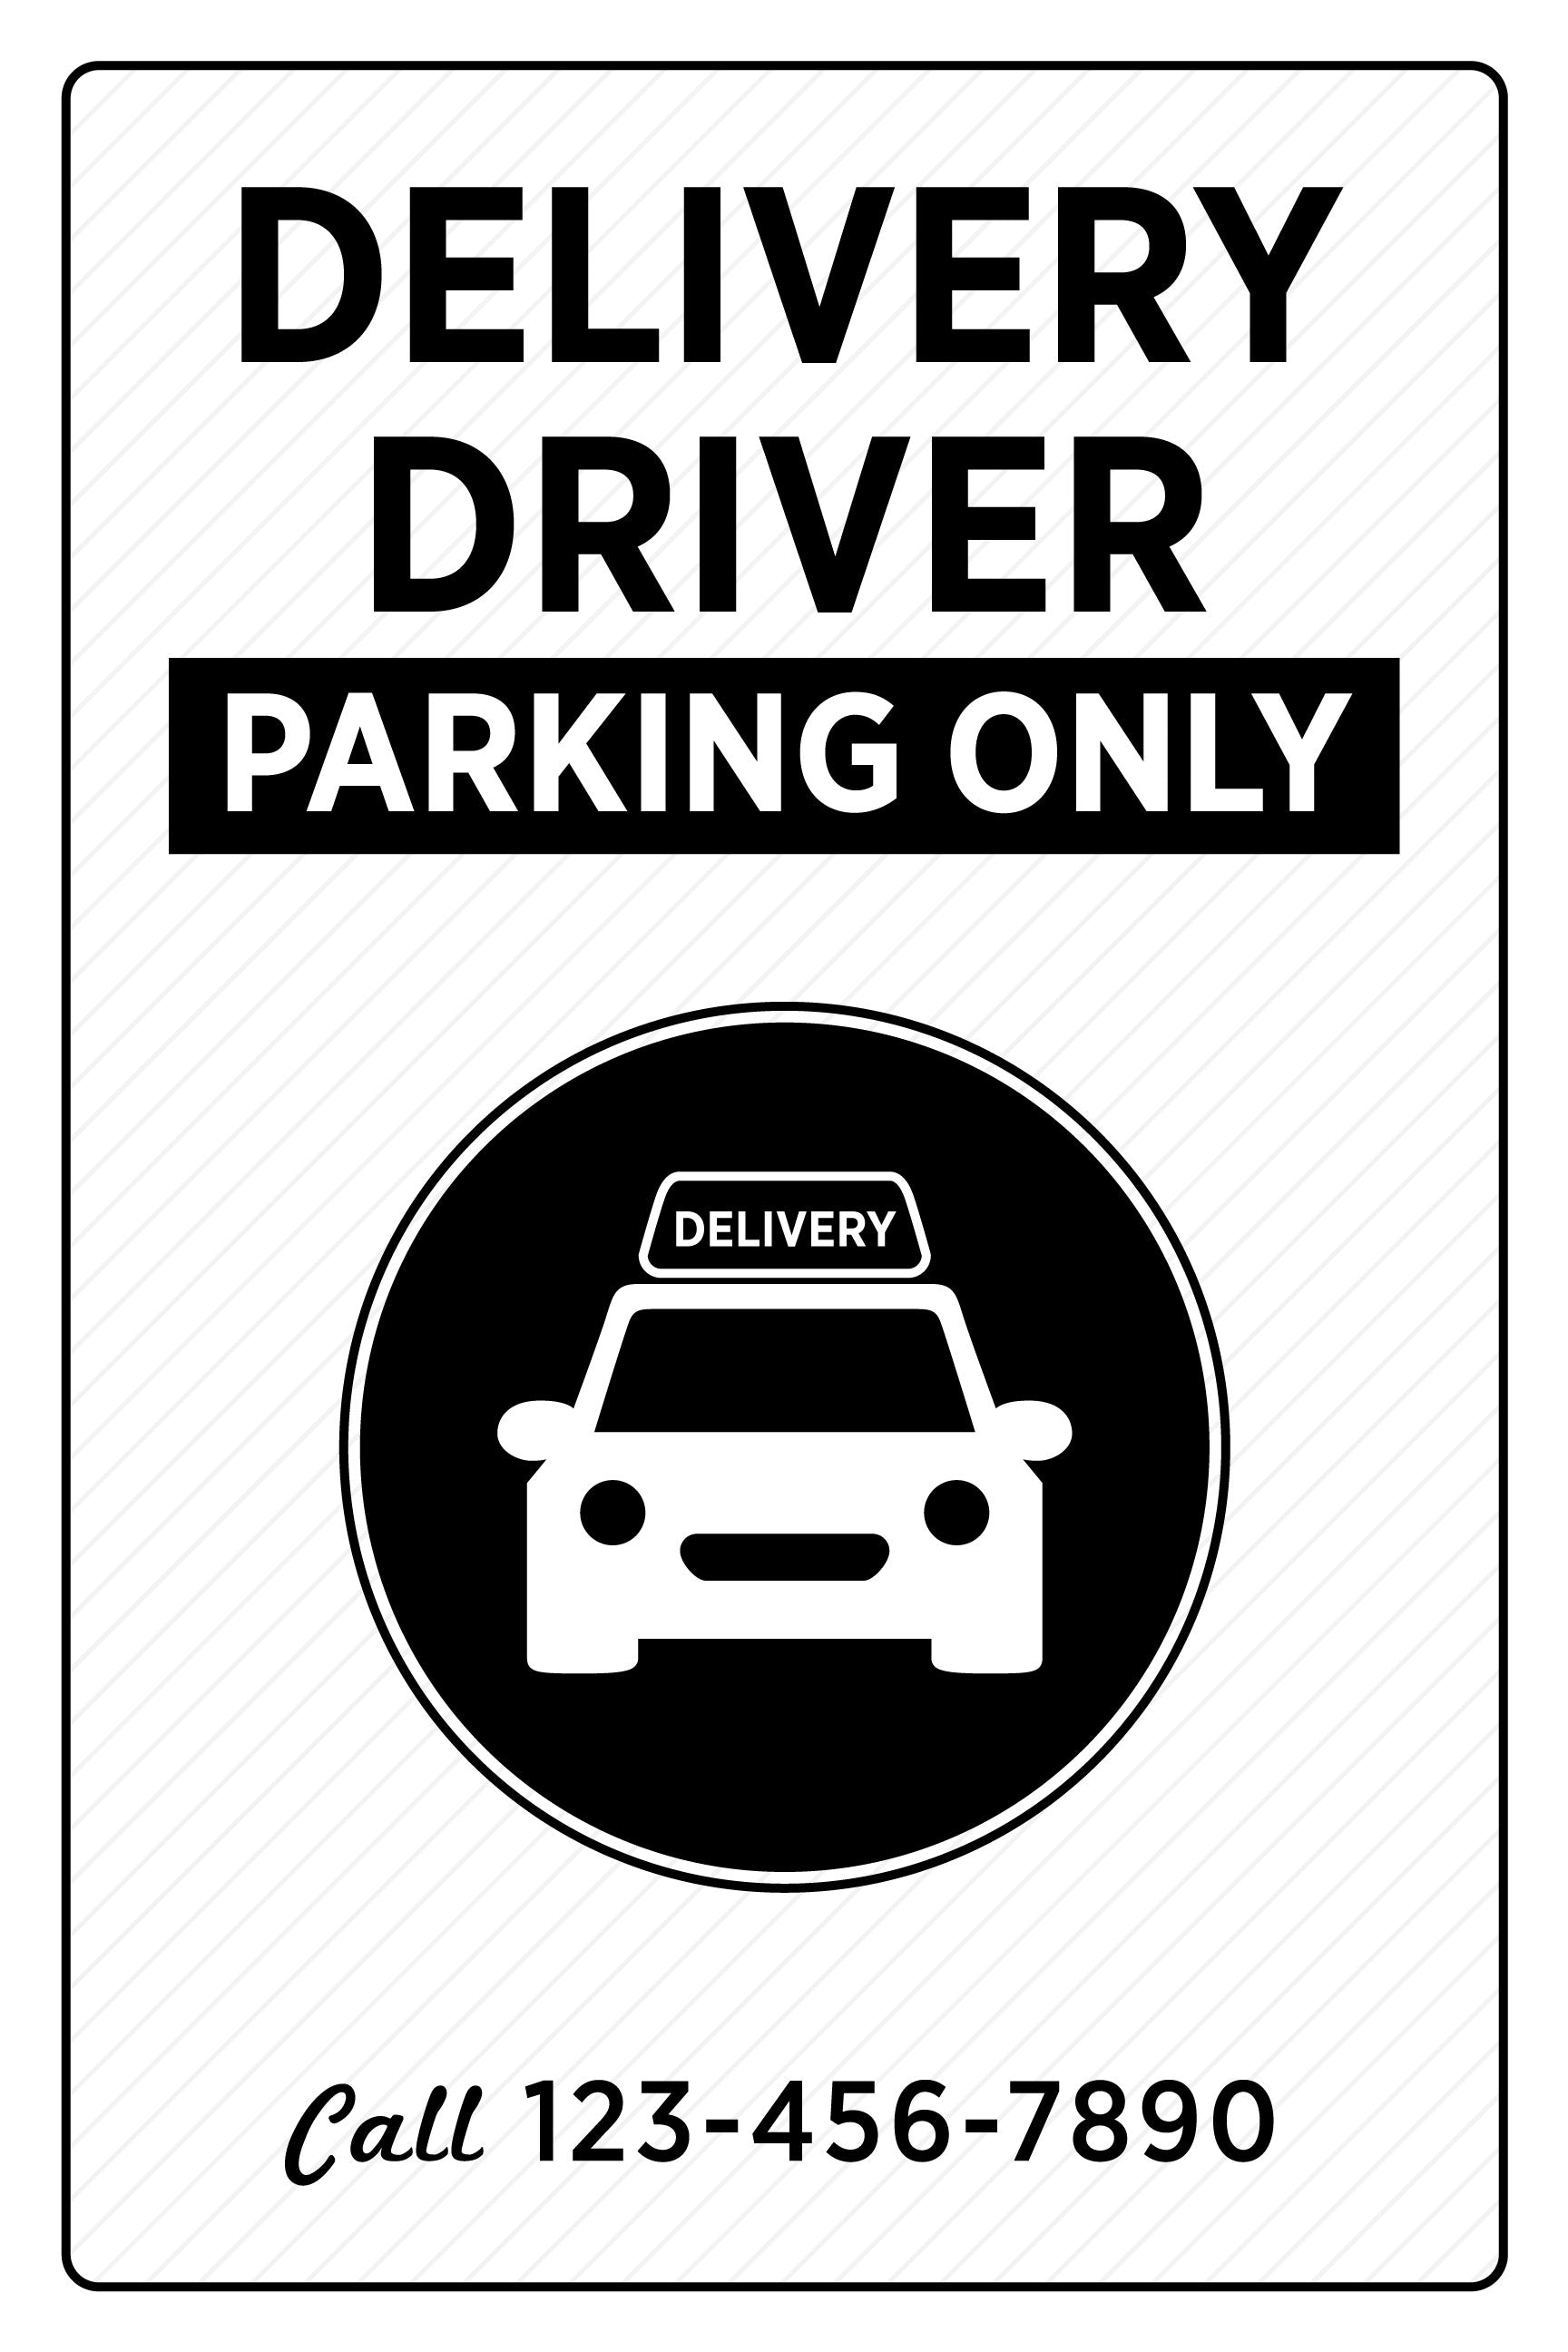 Delivery Driver Parking Only